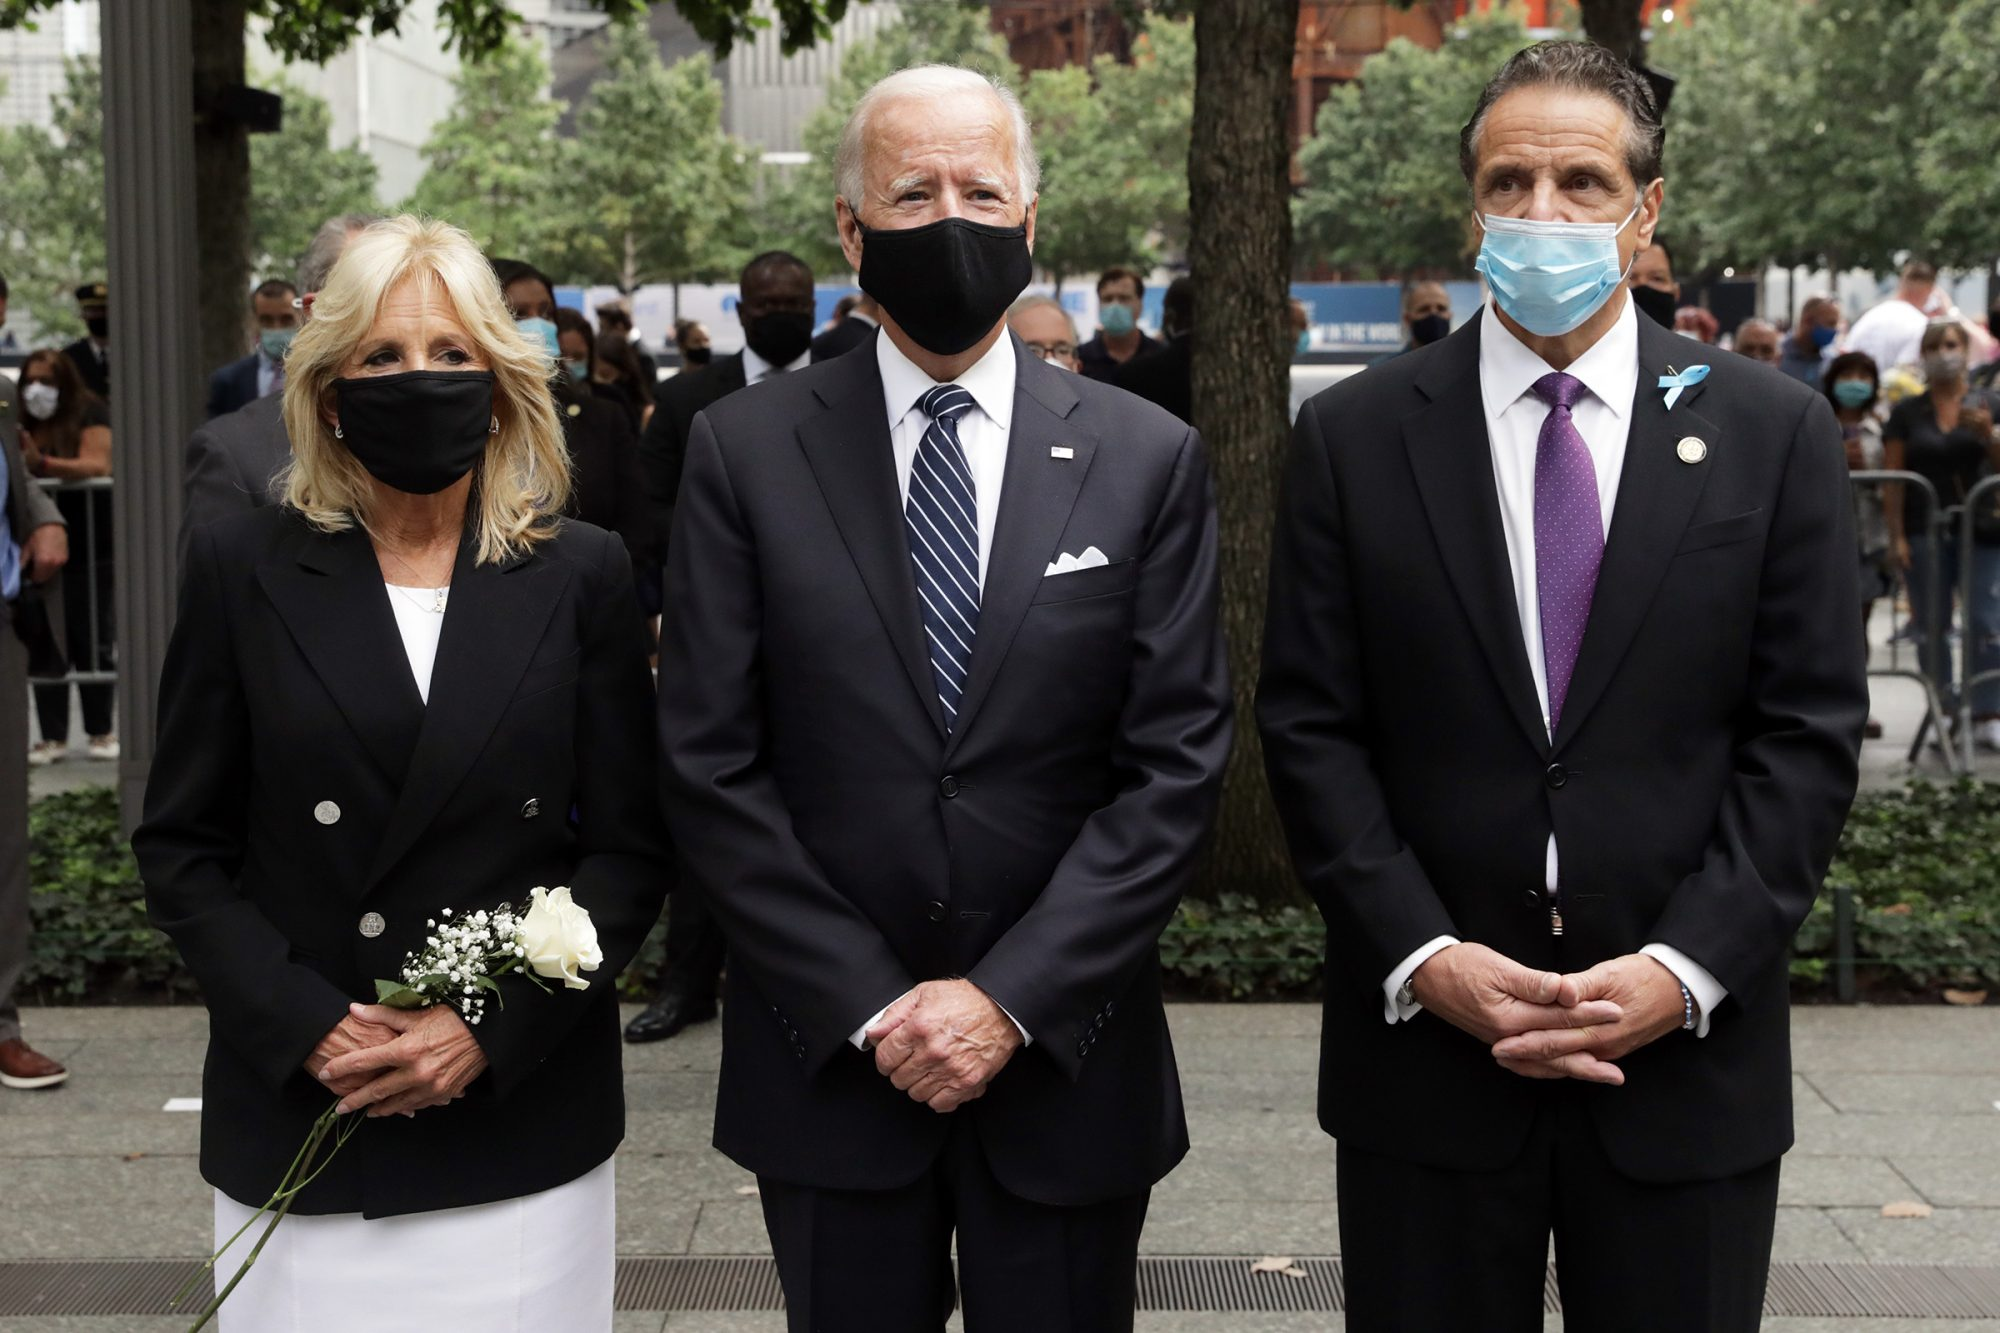 Democratic presidential nominee Joe Biden (center), Dr. Jill Biden (left) and New York Gov. Andrew Cuomo (right) attend a 9/11 memorial service at the National September 11 Memorial and Museum on September 11, 2020